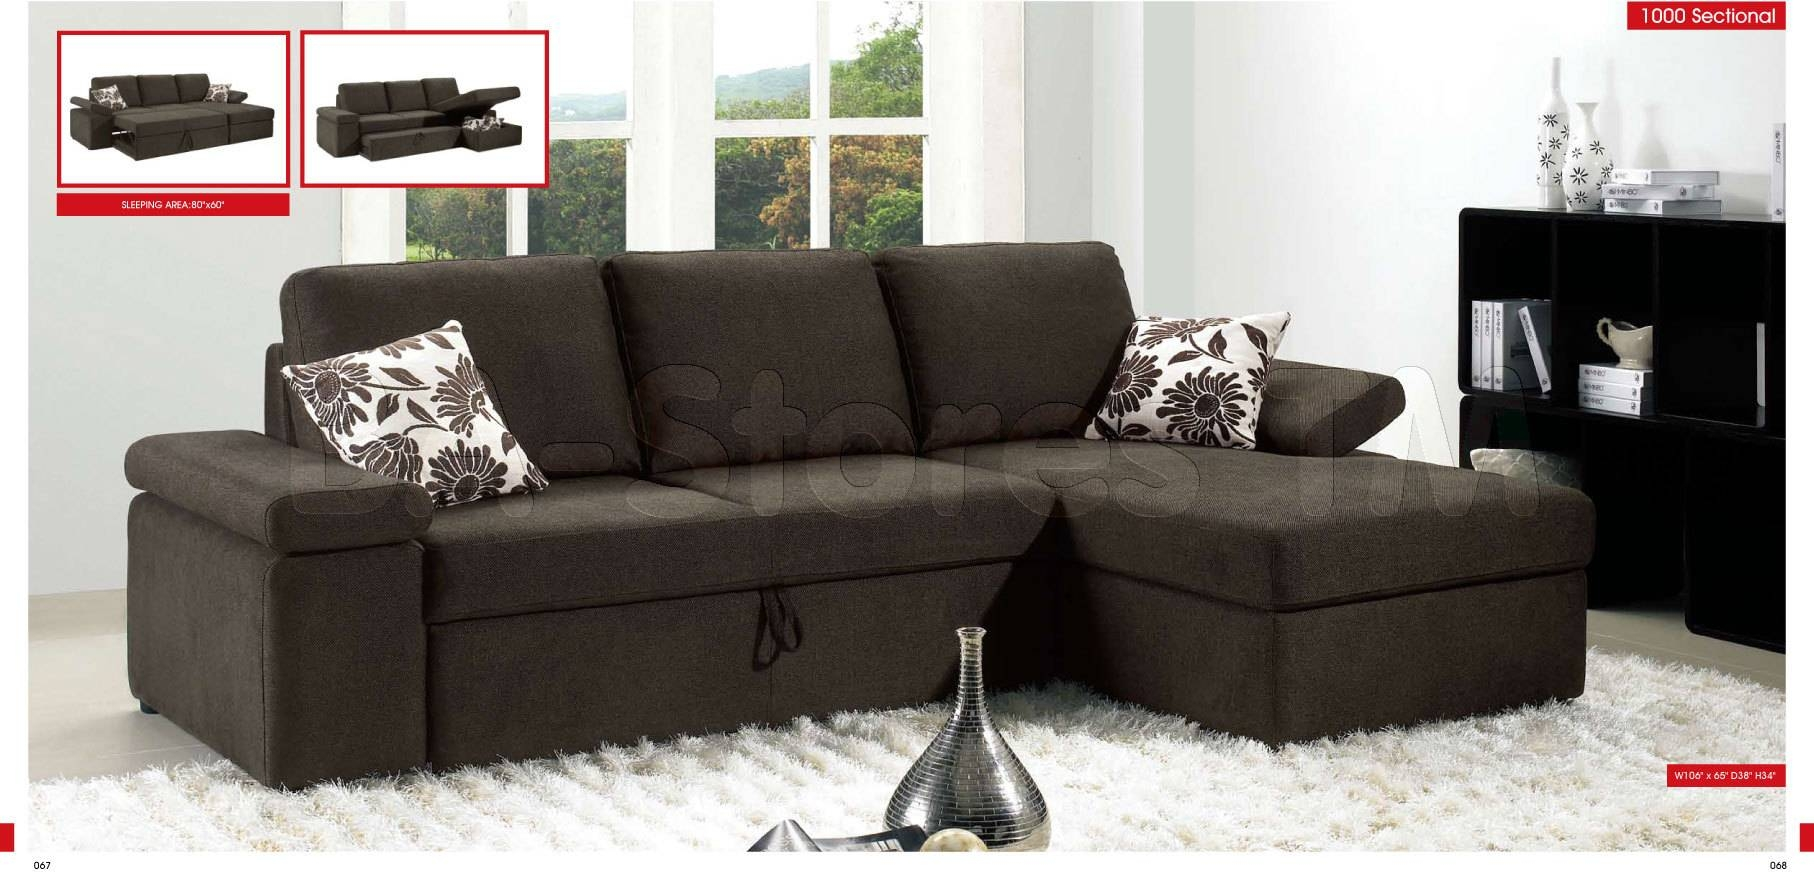 Sofas Center : Cheap Hide Queen Size Pull Out Sofa Ddns Pexcel with Pull Out Queen Size Bed Sofas (Image 24 of 30)